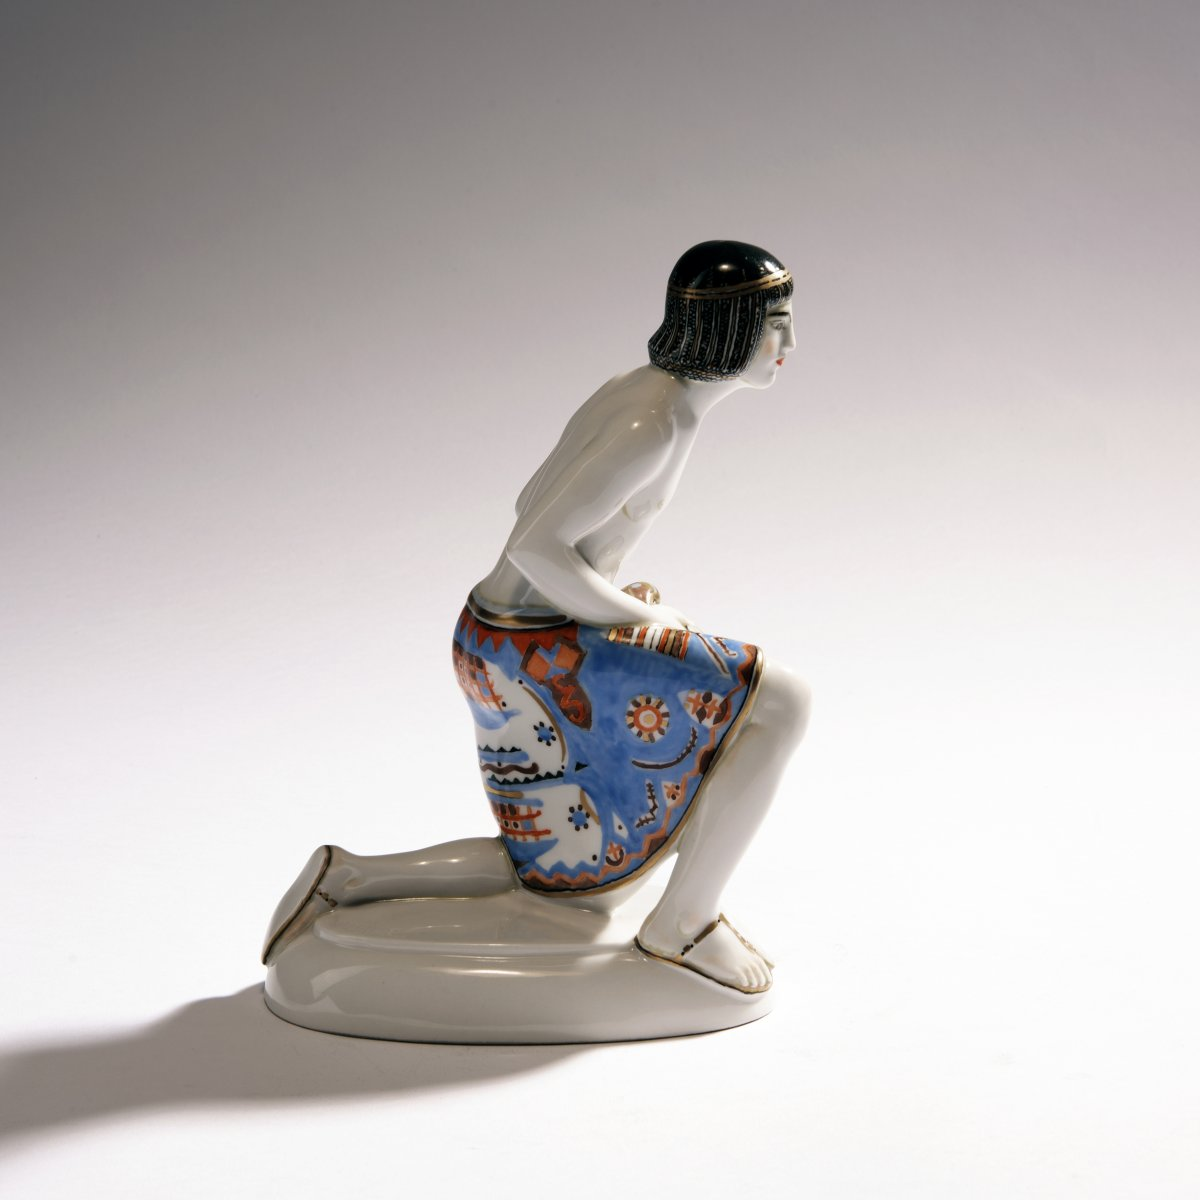 Lot 42 - Adolph Amberg, 'Egyptian', 1910'Egyptian', 1910H. 21 cm. Made by KPM Berlin, in 1914. Porcelain,